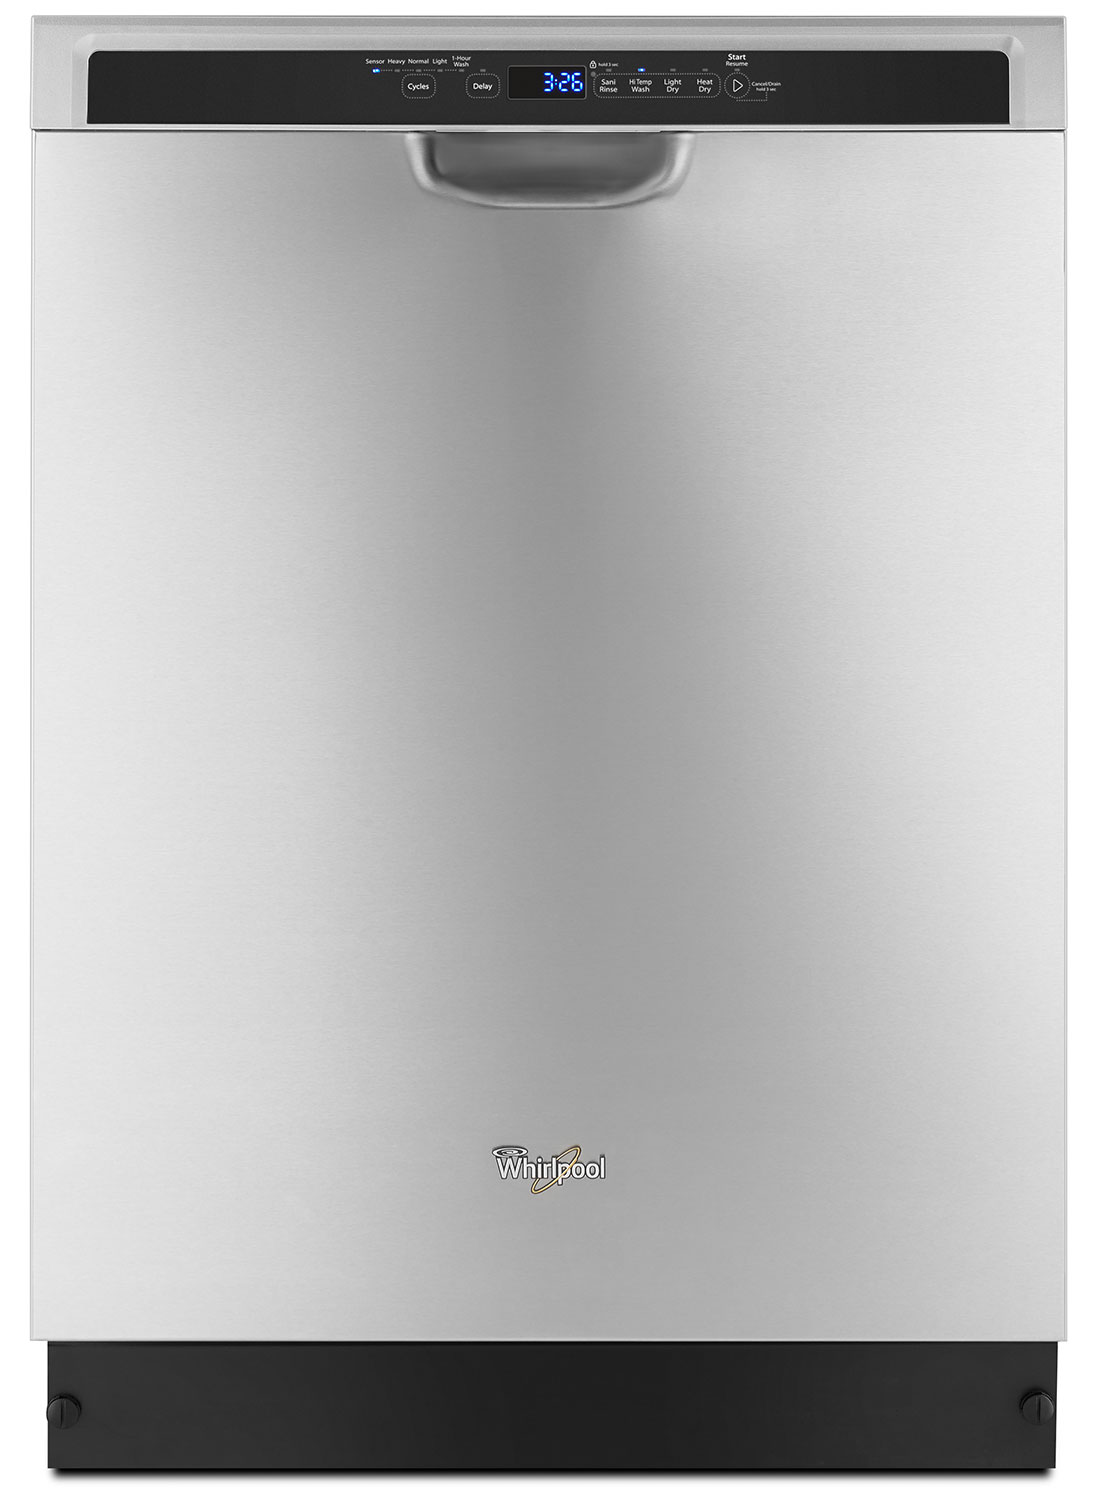 Whirlpool Built-In Dishwasher – WDF560SAFM